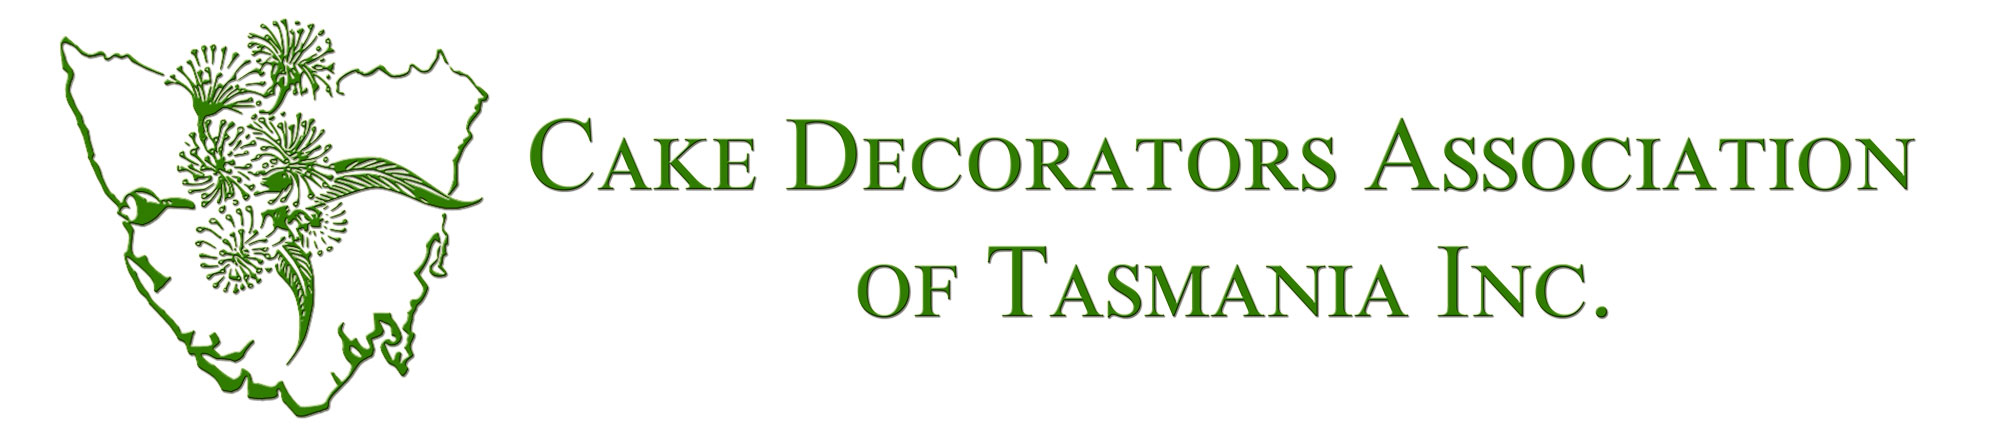 Cake Decorators Association of Tasmania Inc Logo